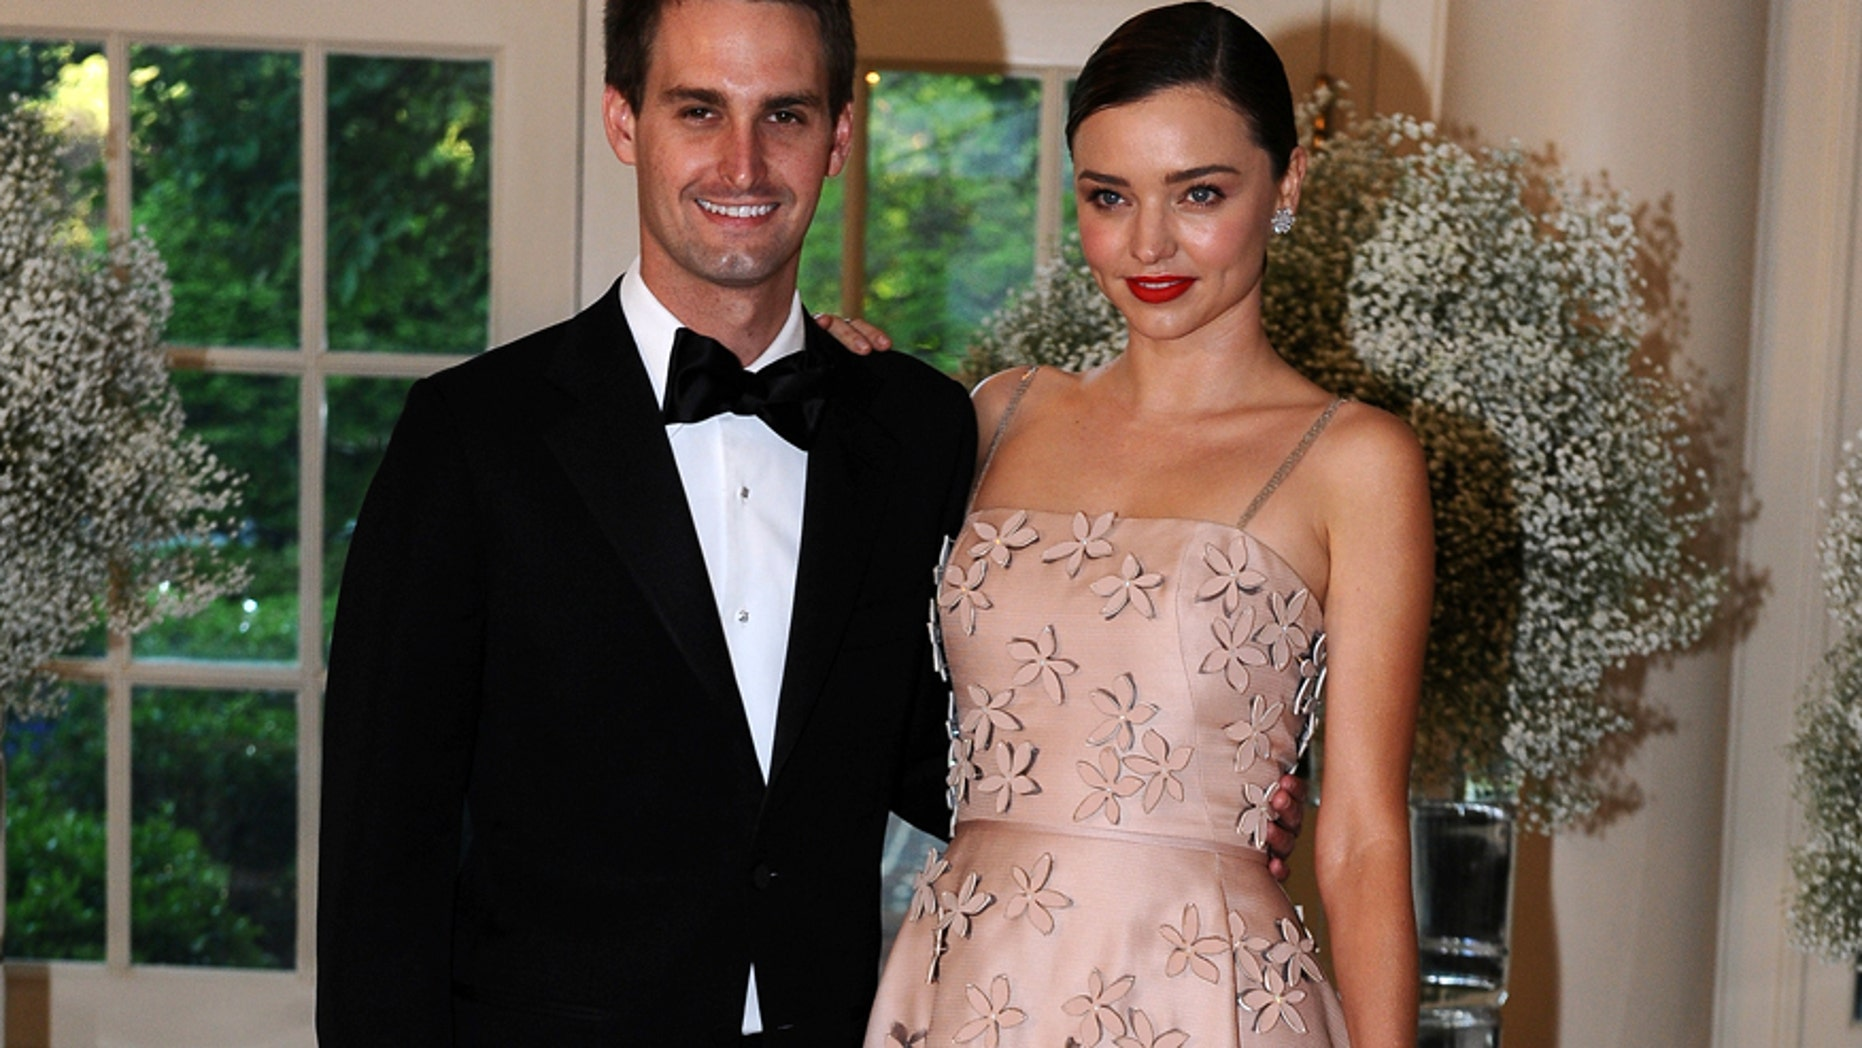 File photo: Evan Spiegel, Chief Executive Officer, Snapchat and model Miranda Kerr arrive for the state dinner in honor of the Nordic Summit at the White House in Washington, May 13, 2016.  (Reuters)